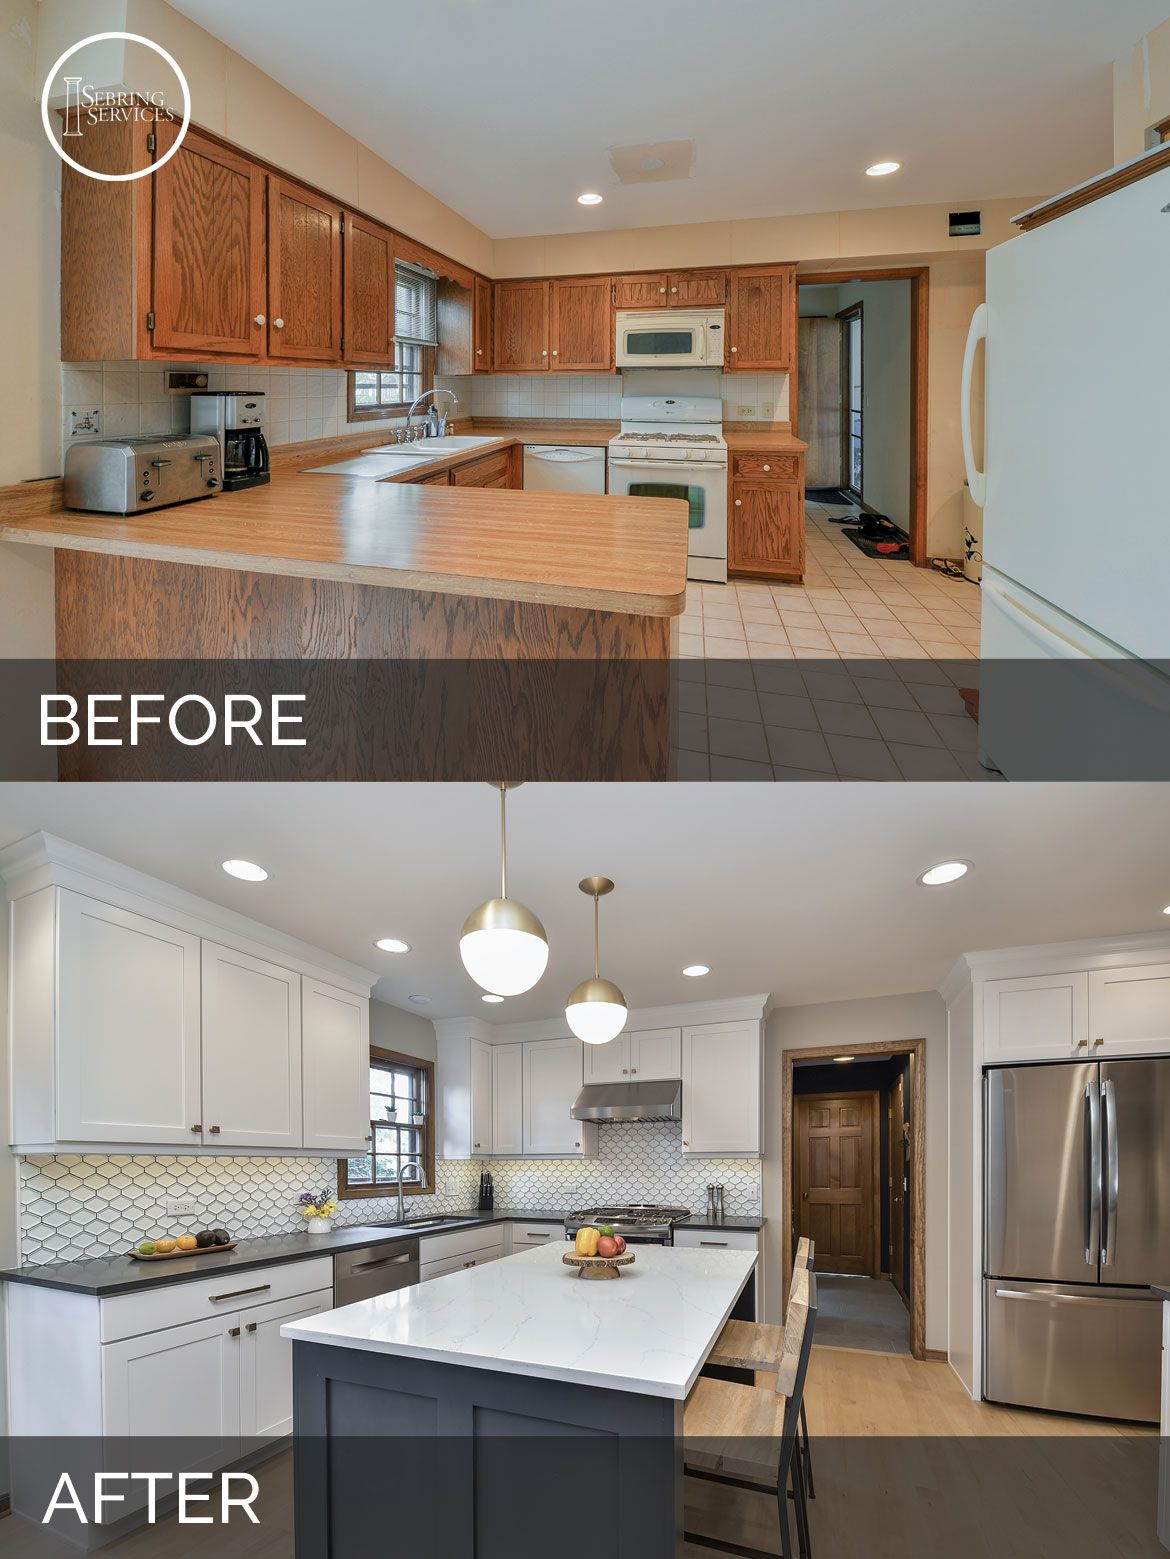 Before and after kitchen remodeling naperville sebring for Kitchen remodel ideas before and after